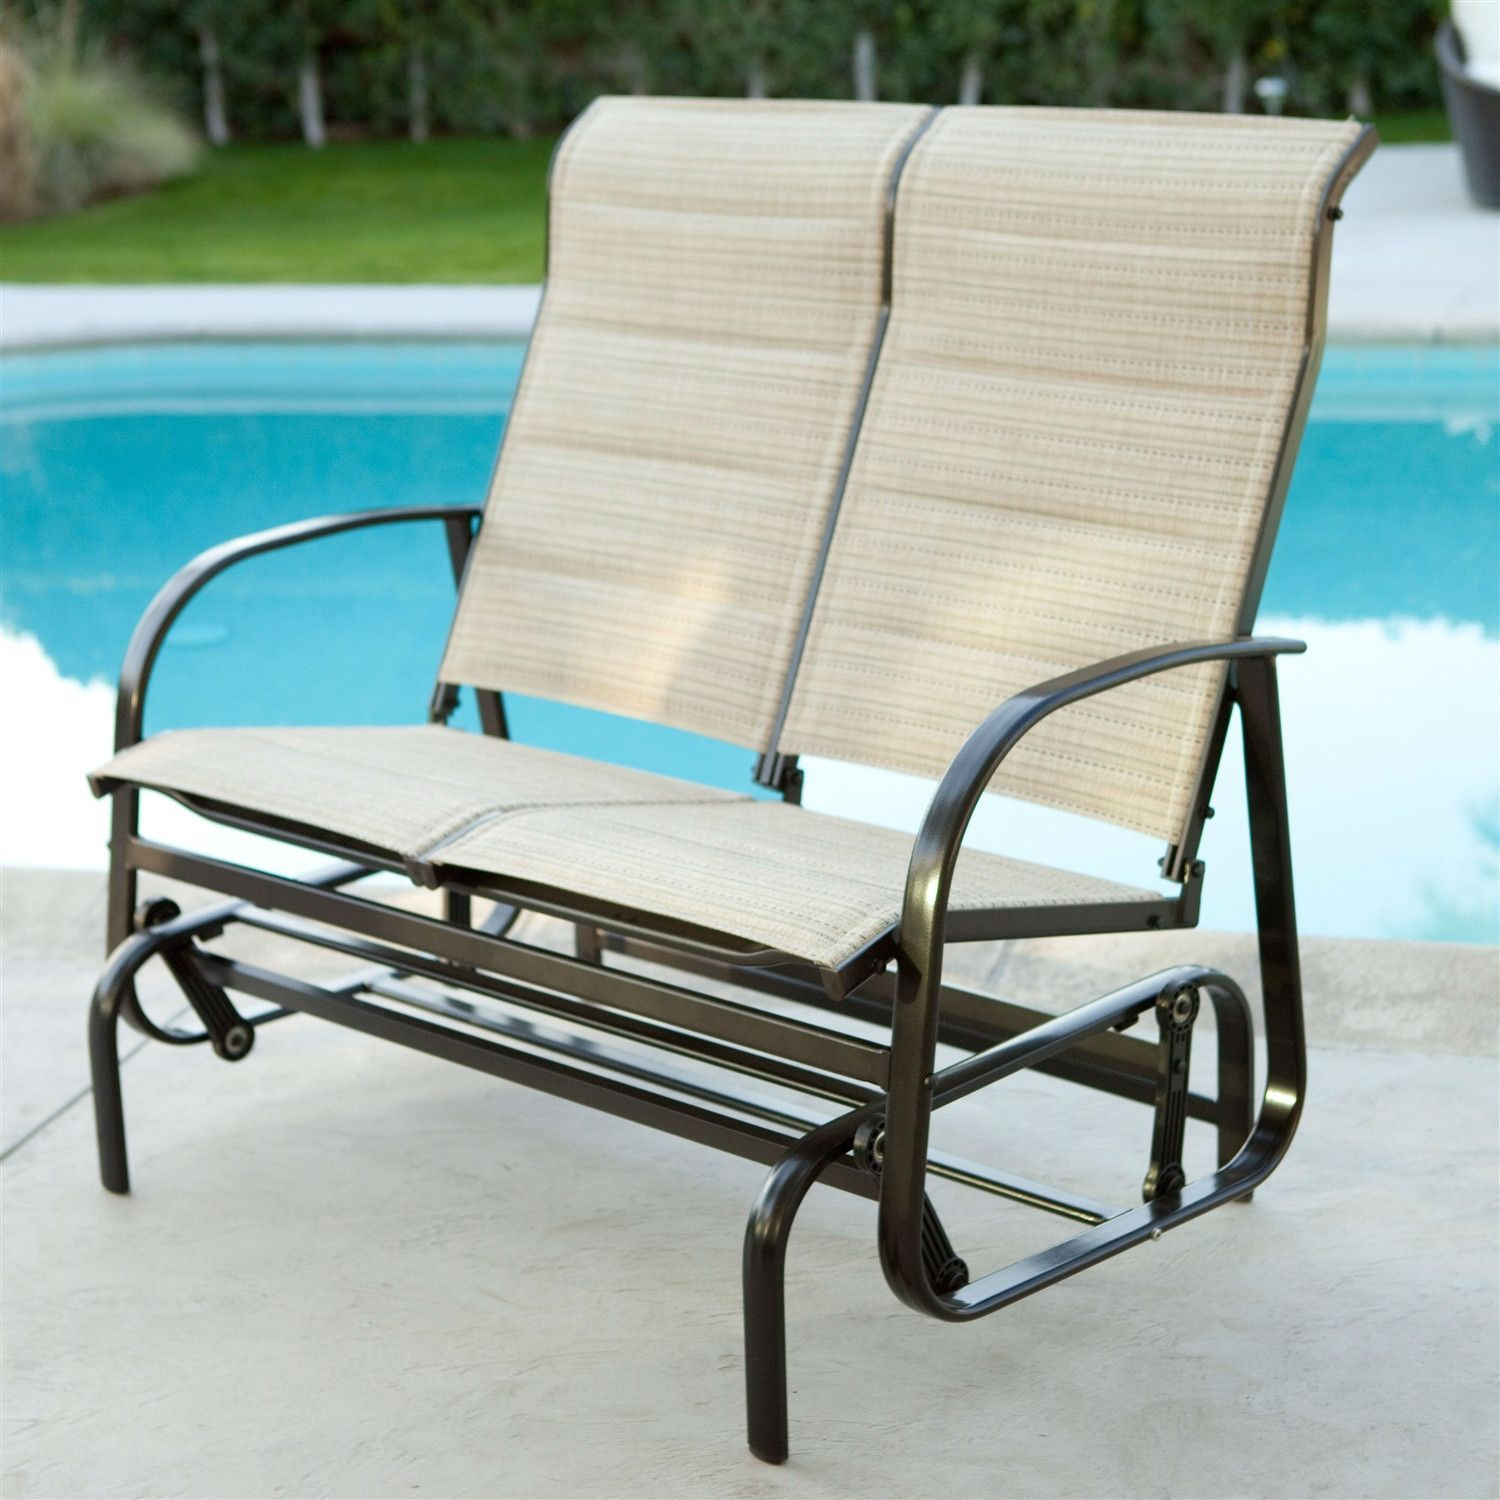 Outdoor Glider Patio Chair Loveseat With Padded Sling Seats In Beach Color Outdoor Glider